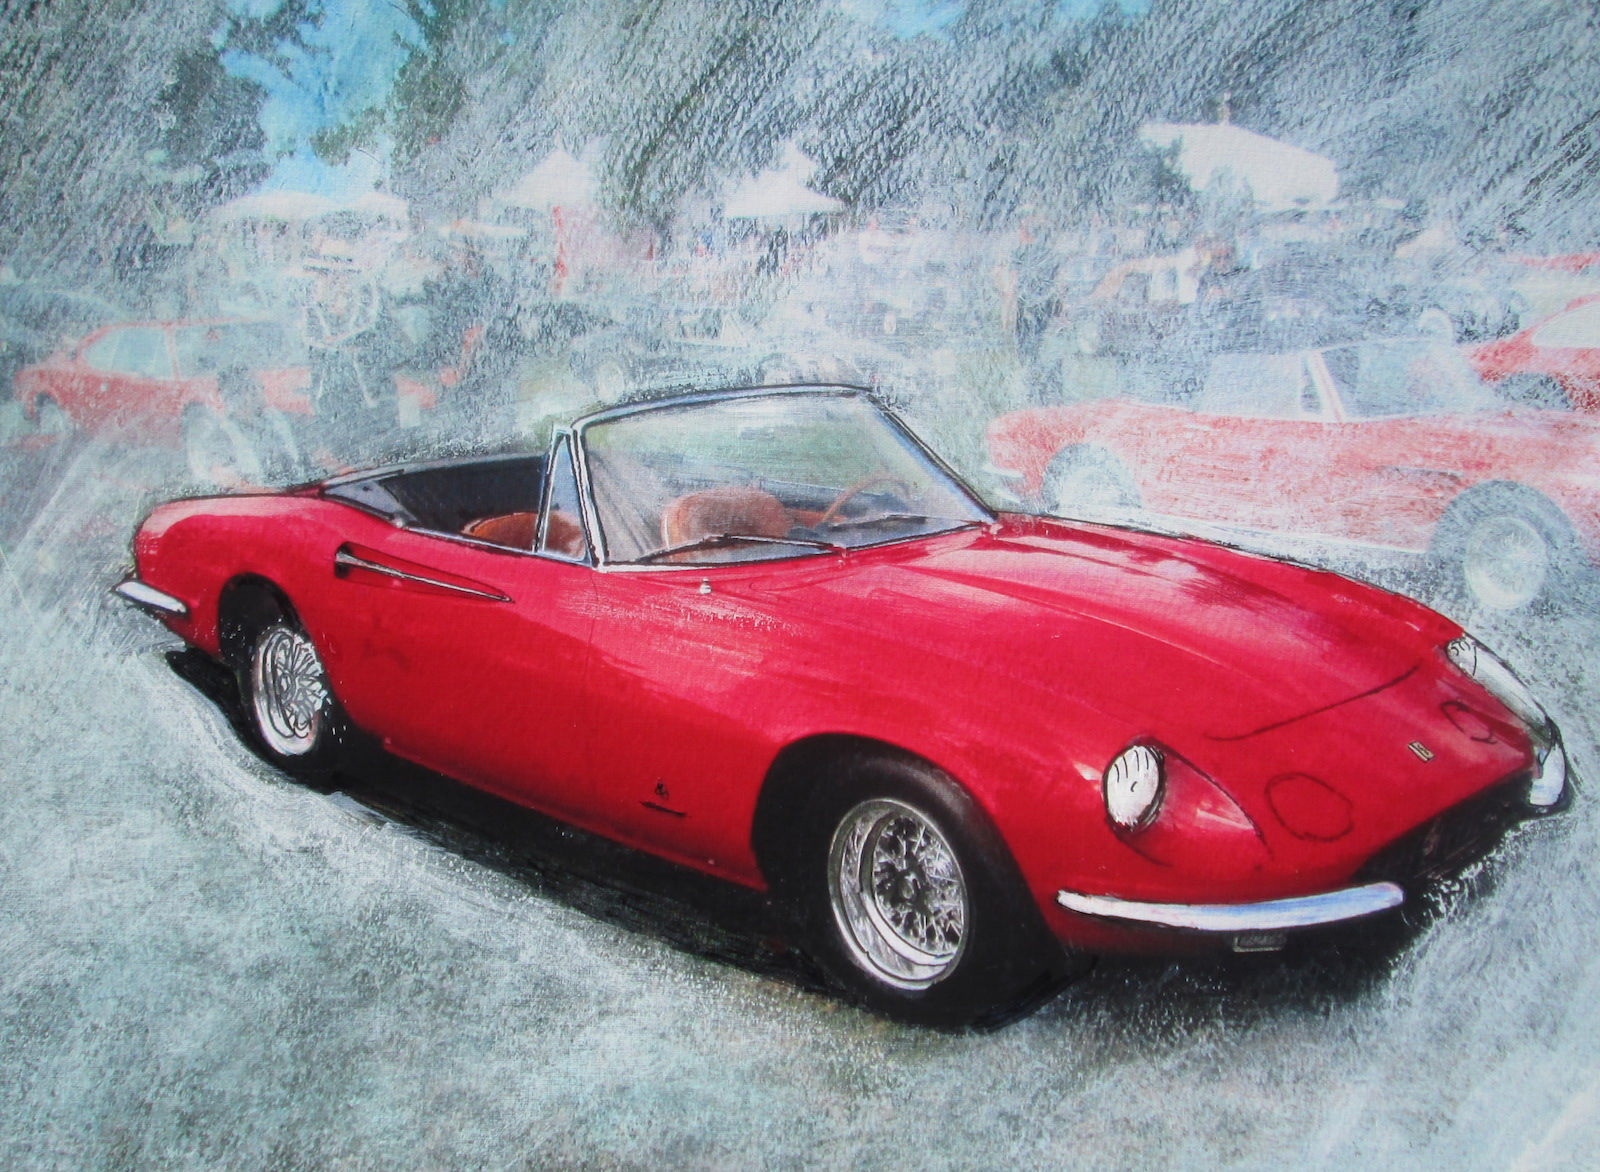 The 1967 Ferrari 365GT California Spyder